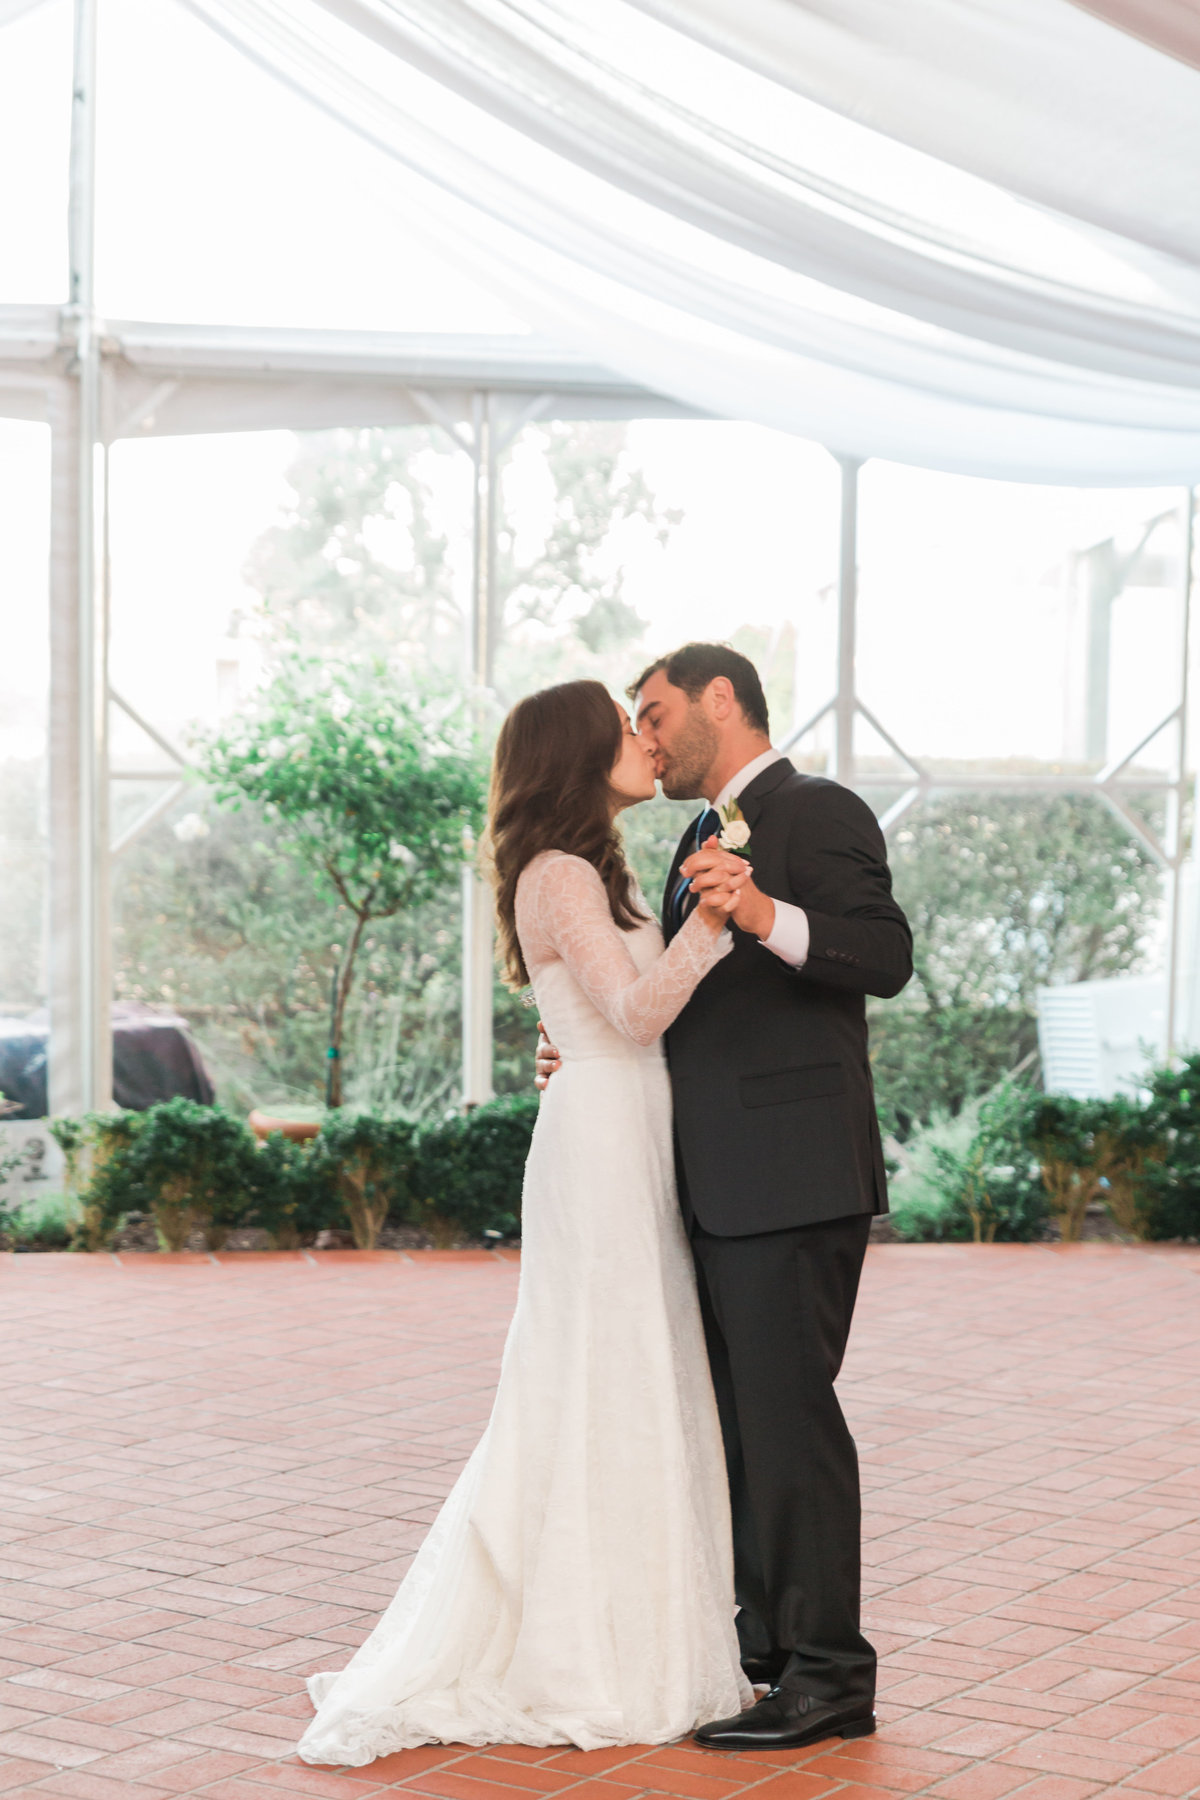 Carmel_Seaside_Chic_Wedding_Valorie_Darling_Photography - 119 of 134